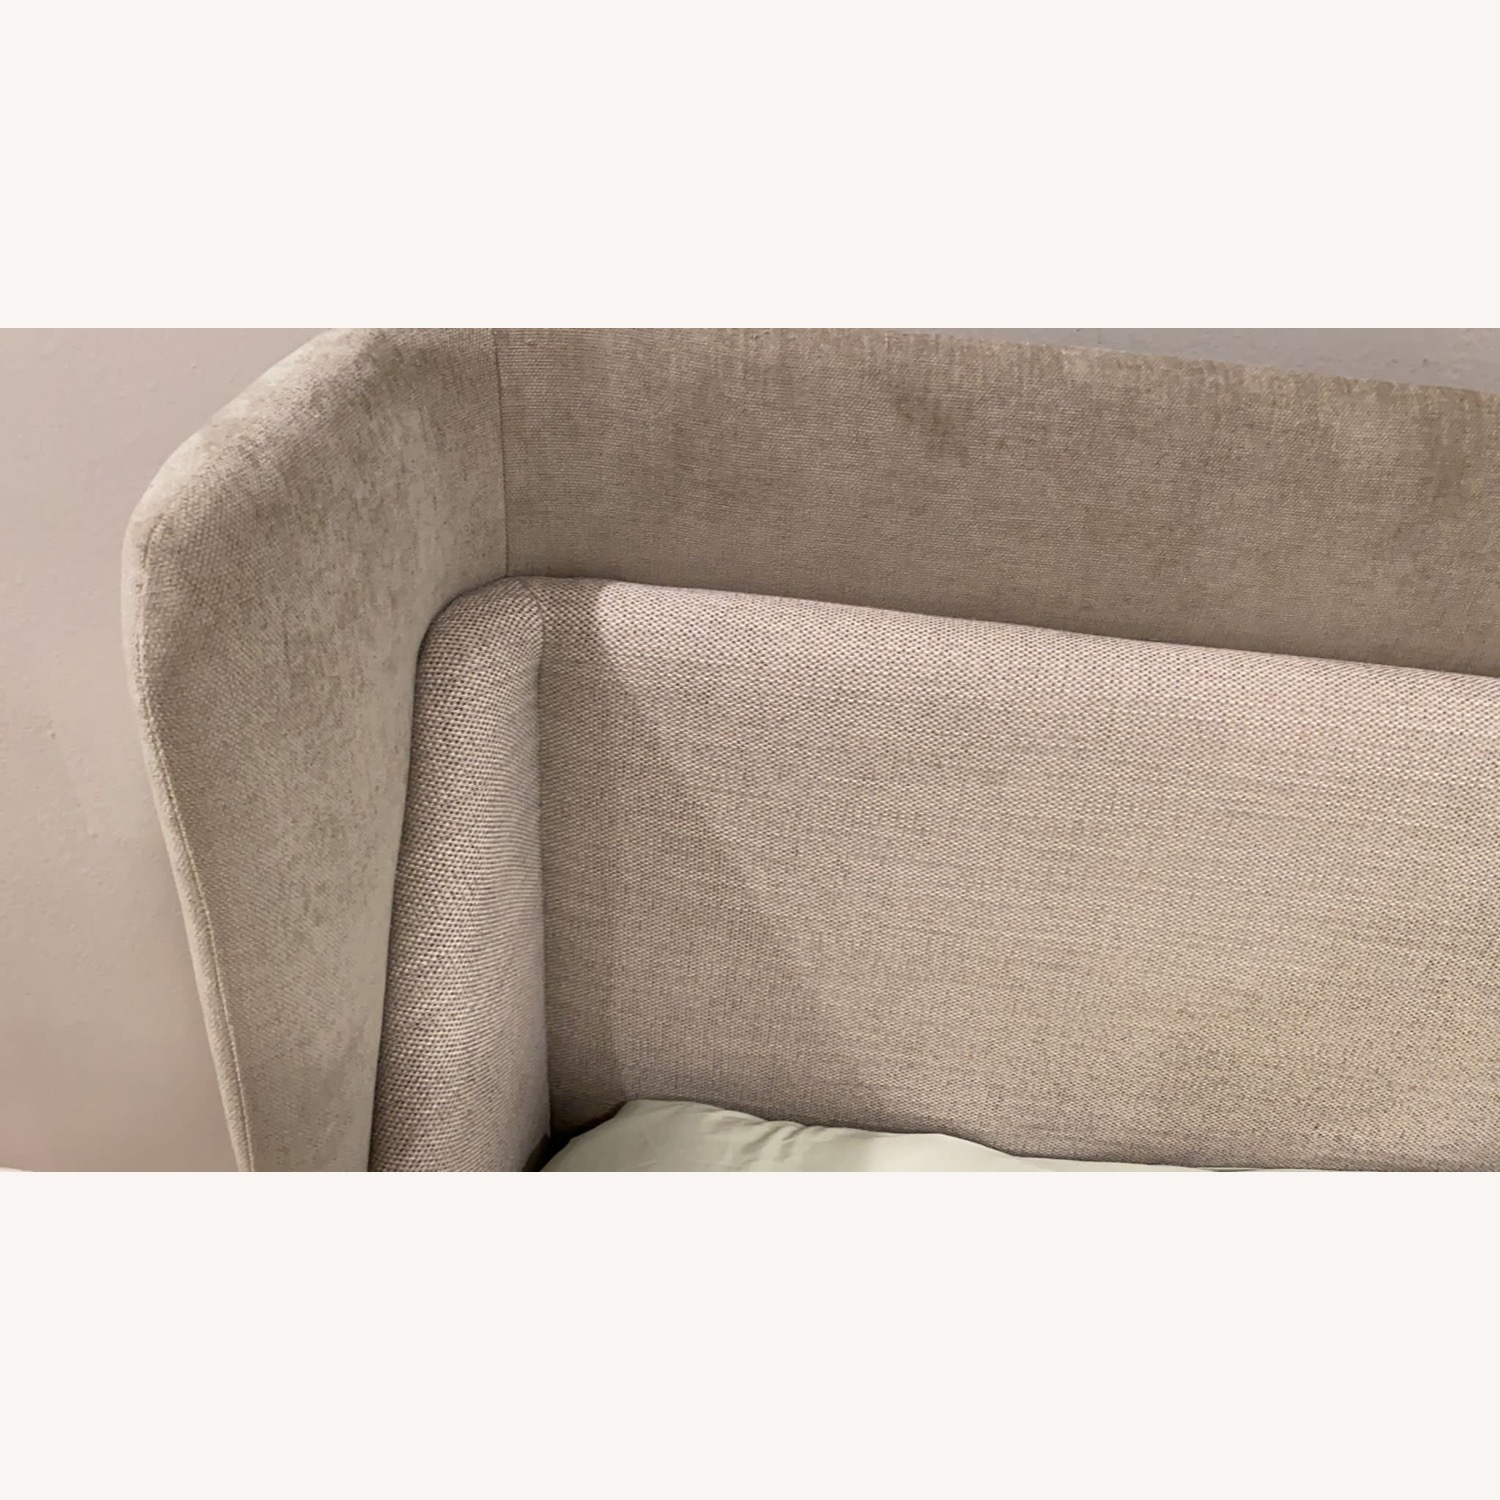 West Elm Thea Wing Bed (King Size) - image-3